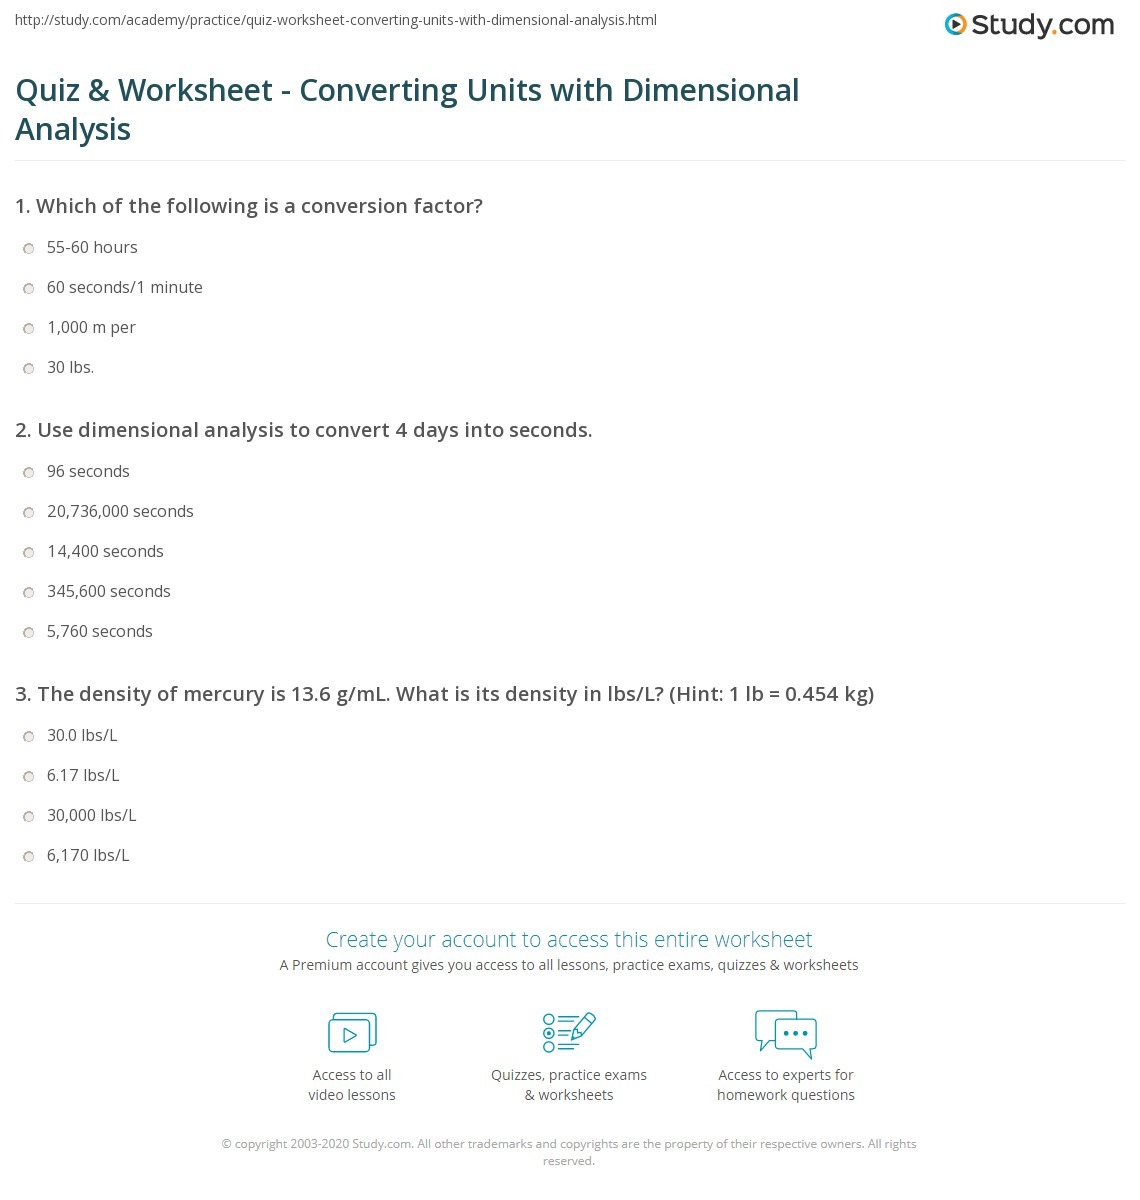 Quiz & Worksheet Converting Units with Dimensional Analysis